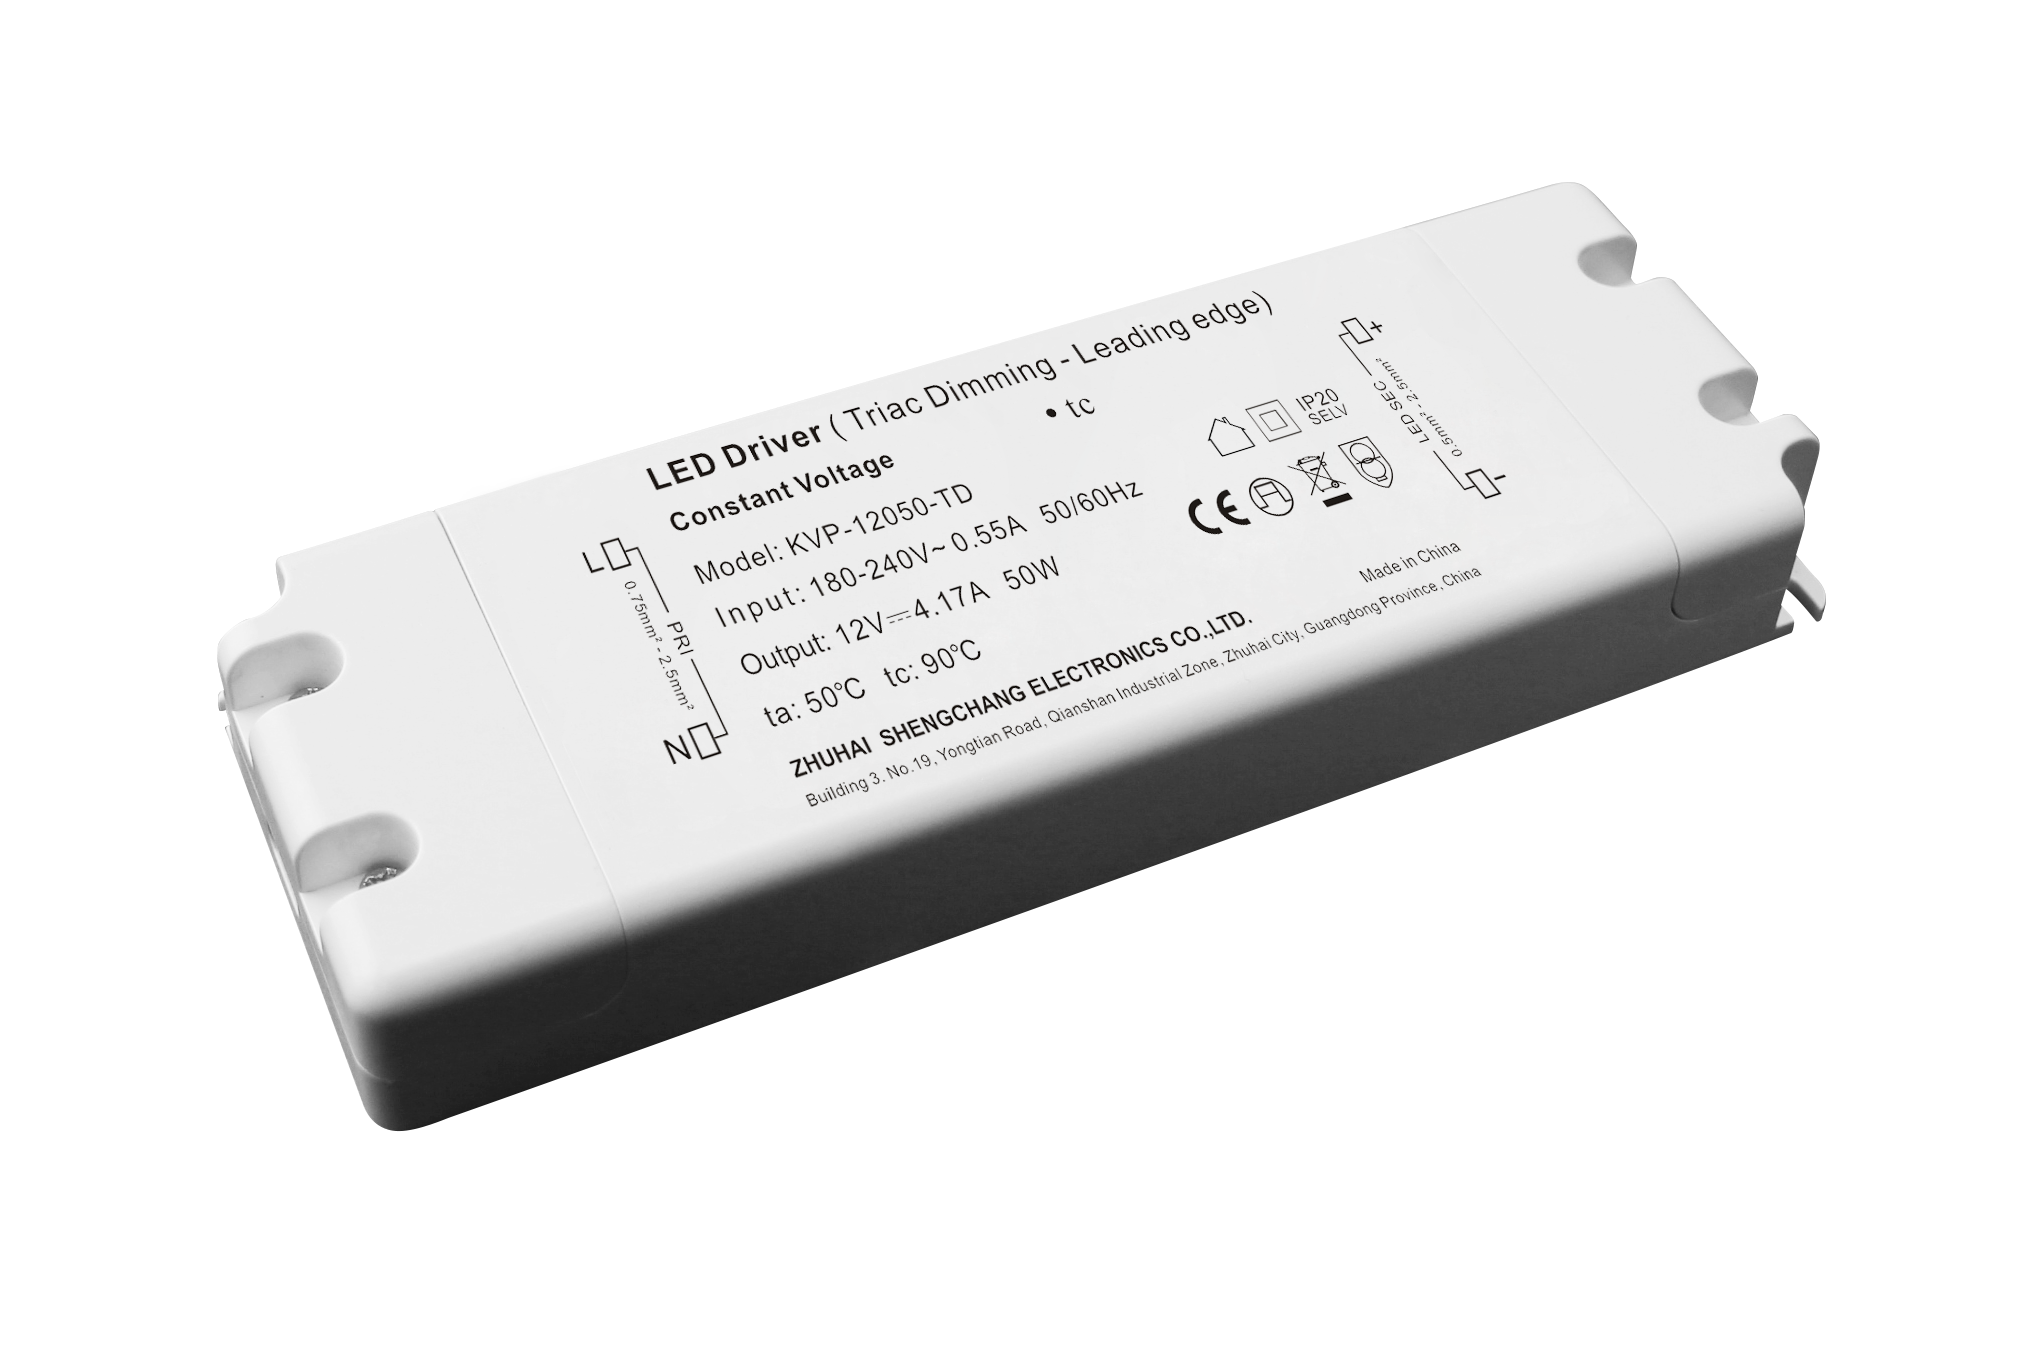 220VAC KVP series 50W constant voltage Triac dimmable driver